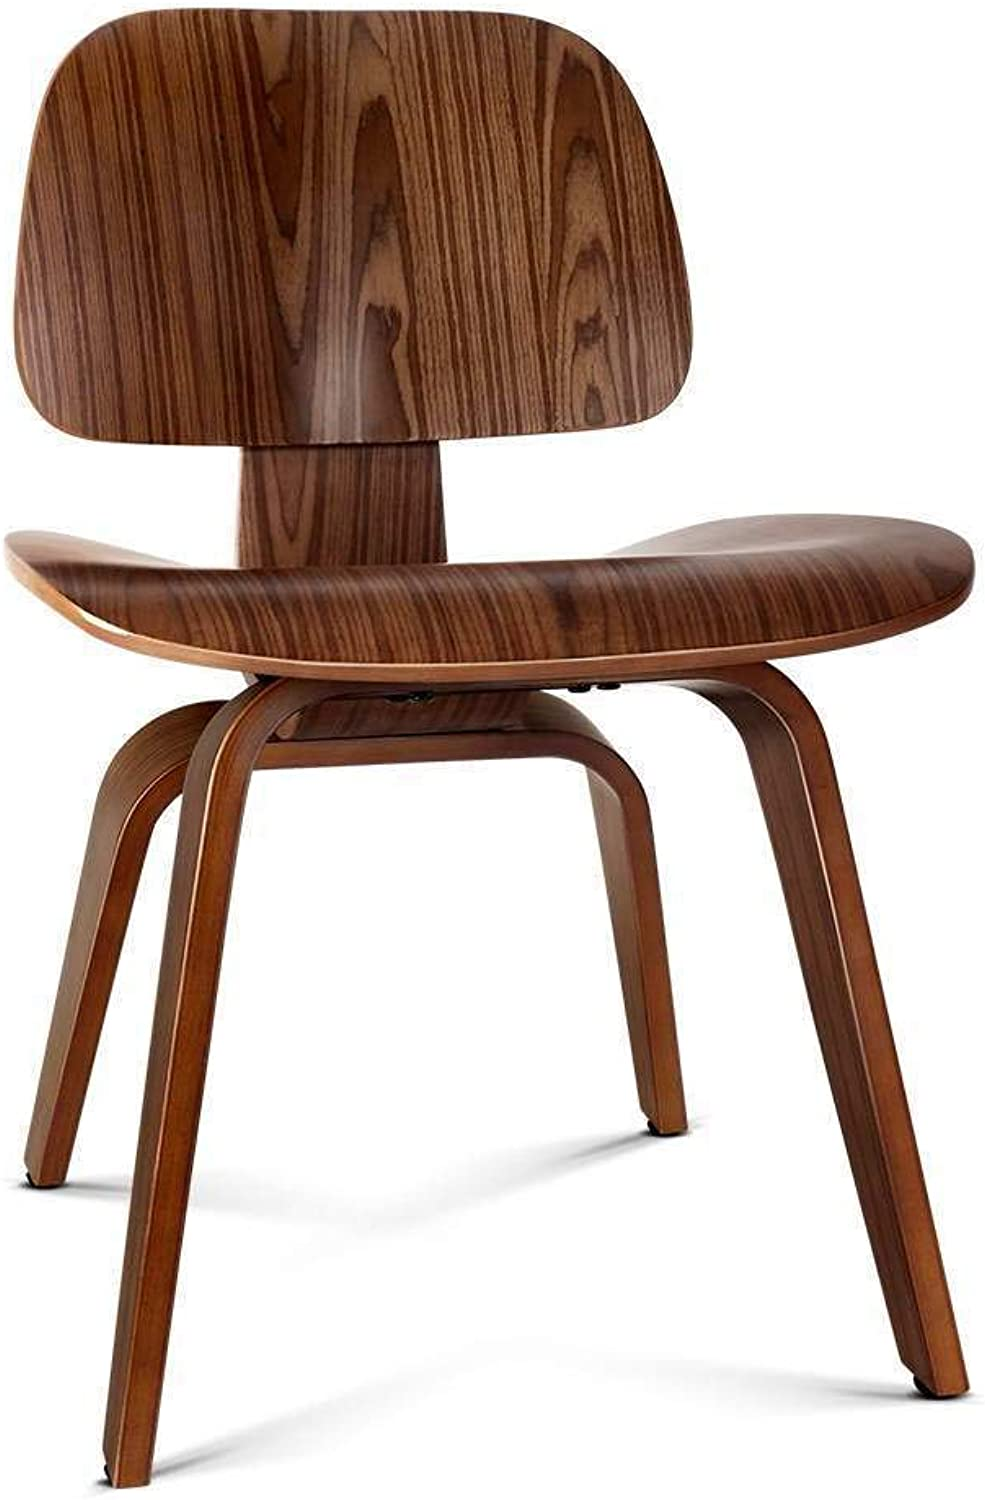 Artiss Eames DCW Lounge Dining Chairs Wooden Living Room Chairs Walnut